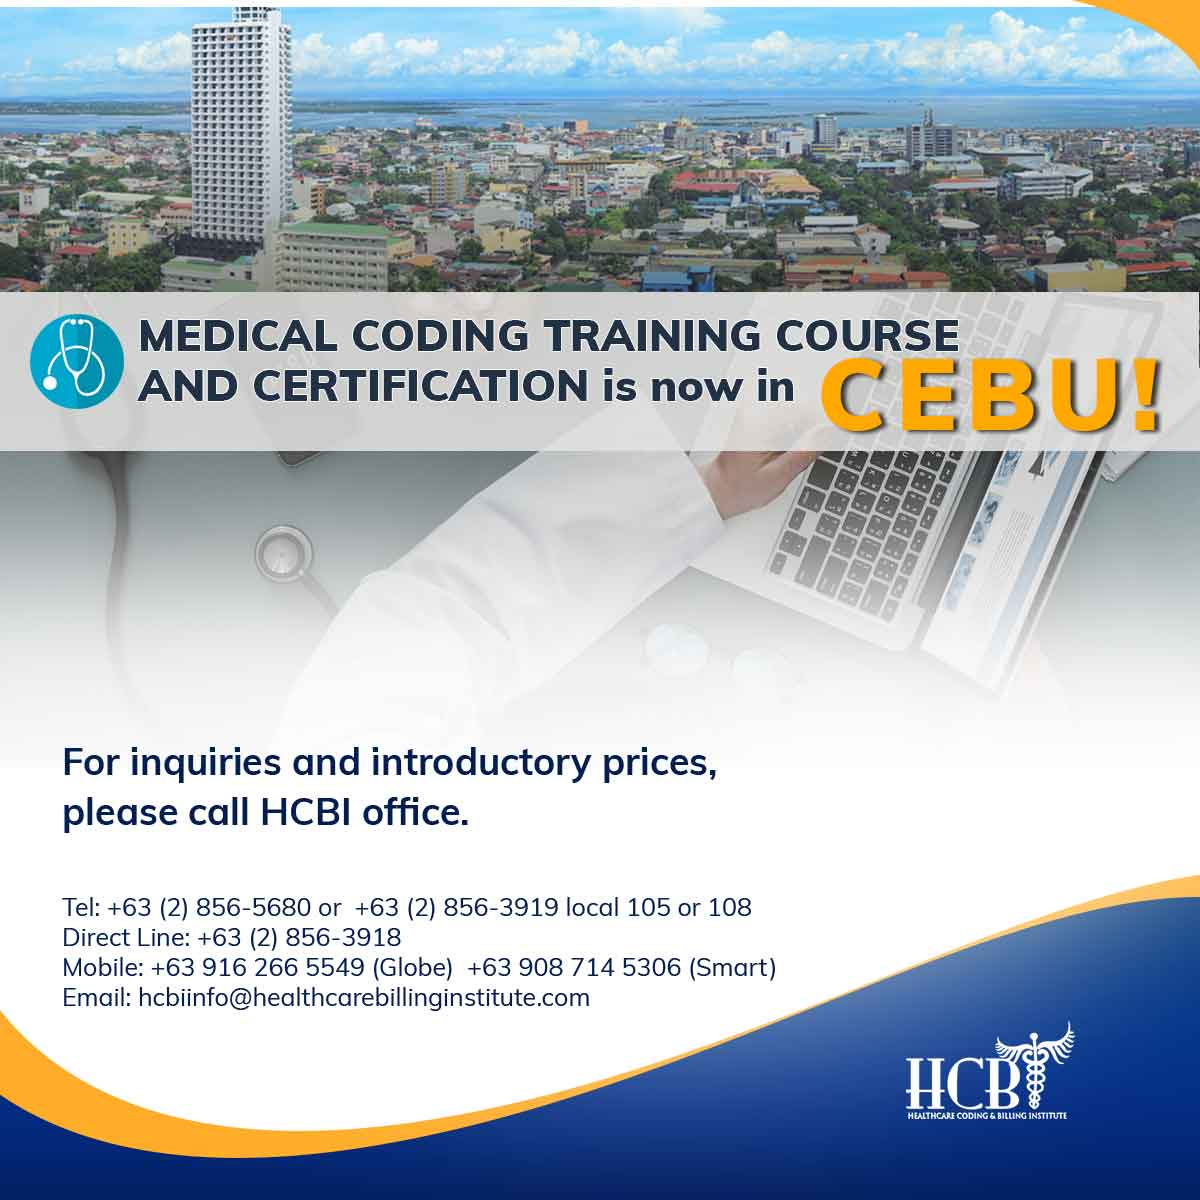 HCBI-Training-Teaser-Post-for-Cebu_lq, hcbi